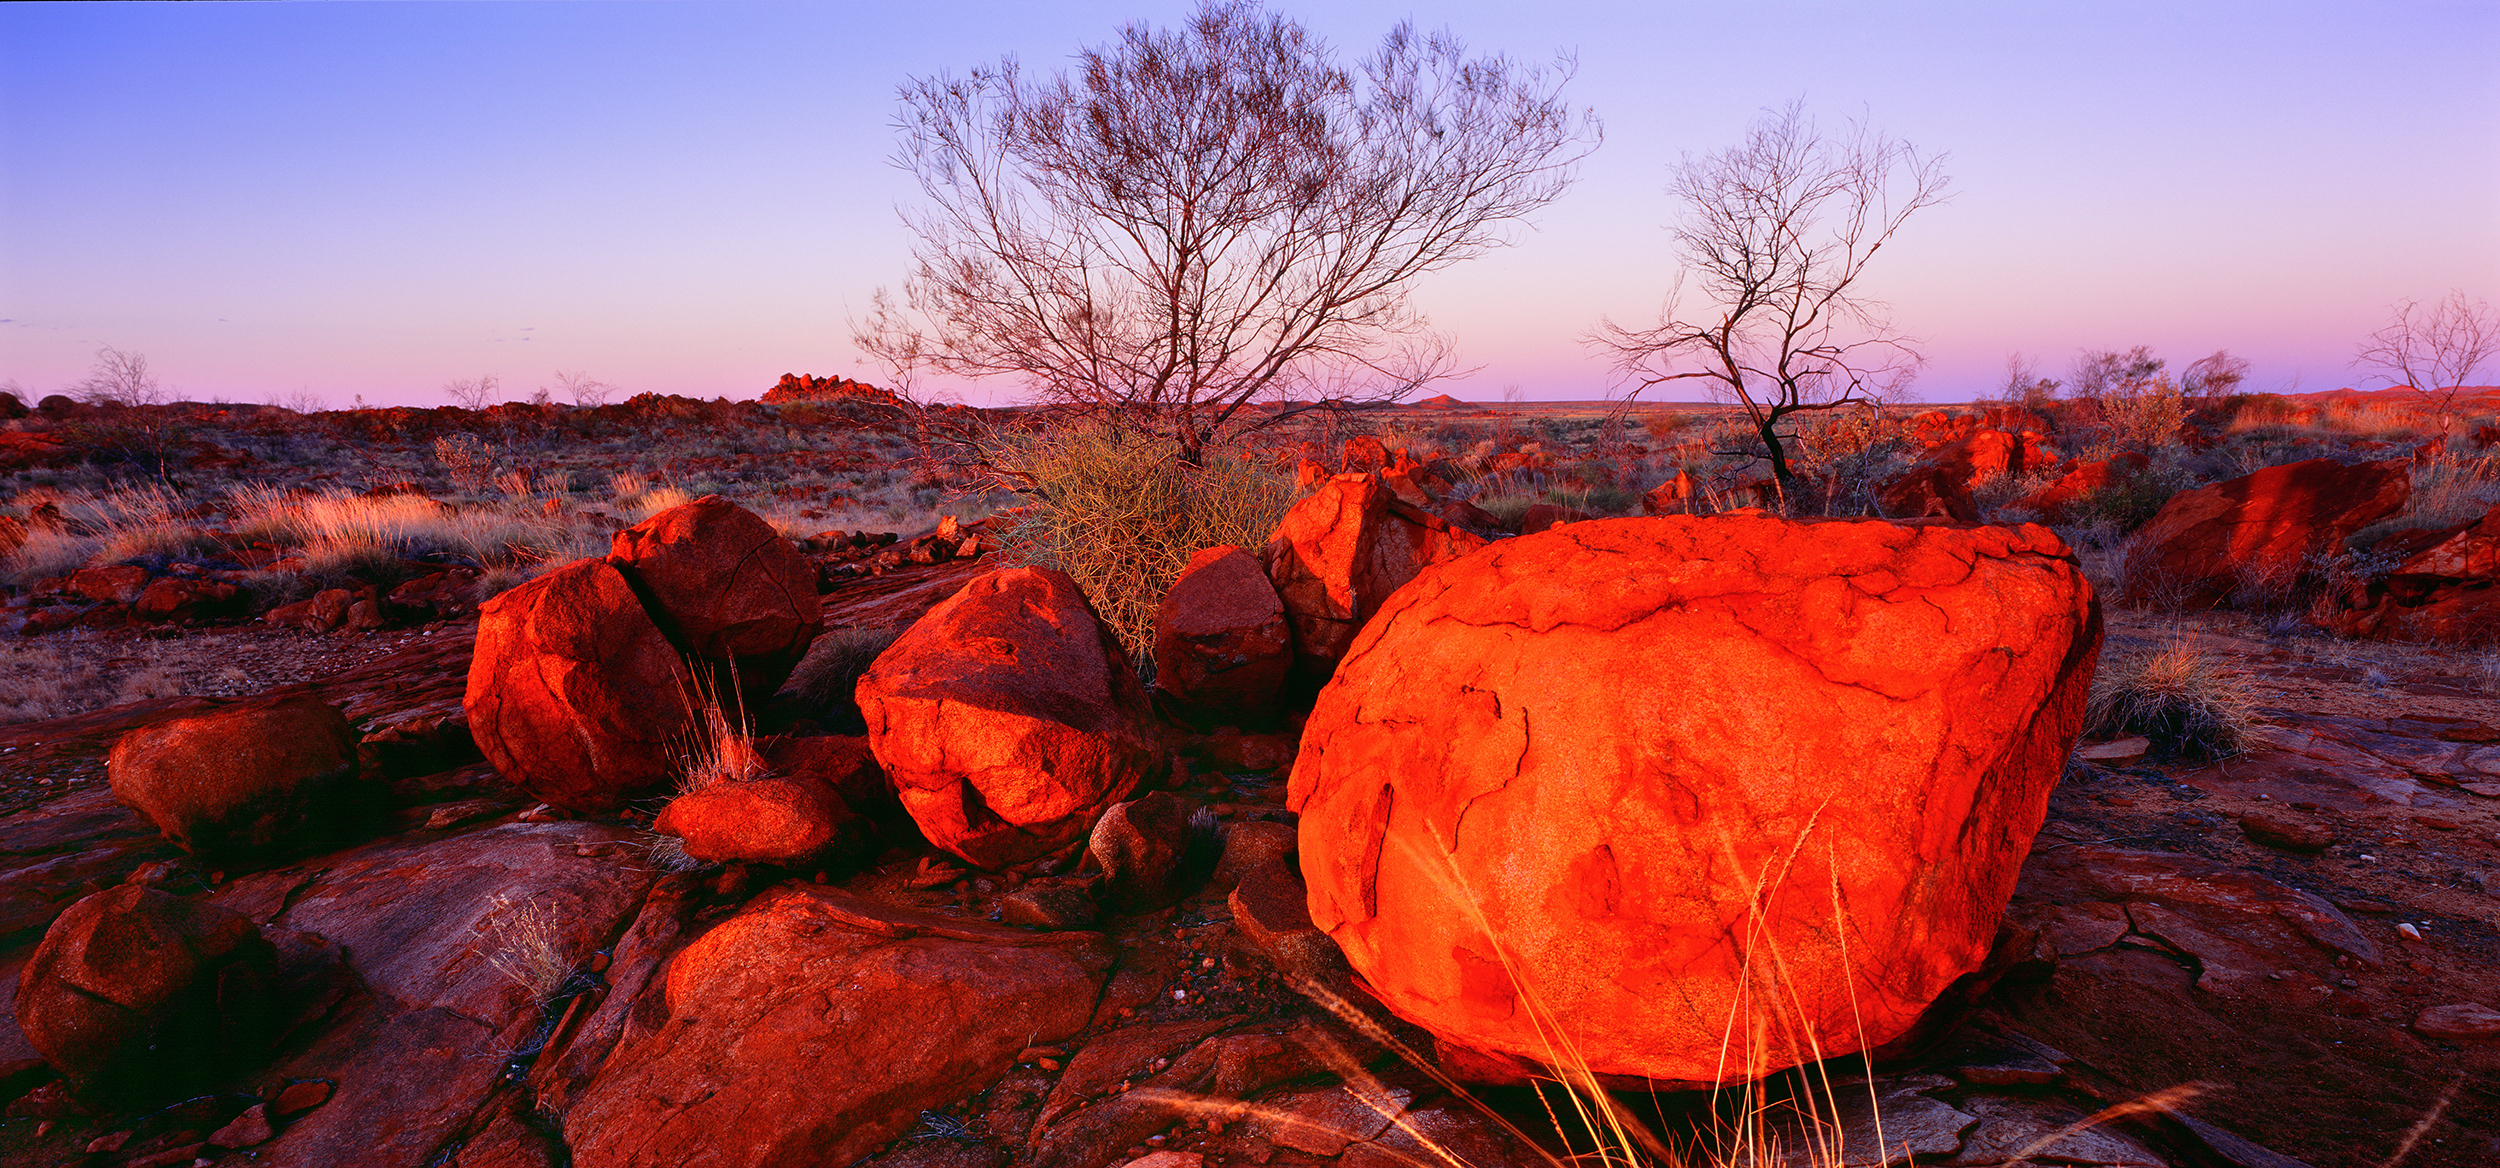 Granite Outcrop, Nullagine, Pilbara, Western Australia, 2008.  Edition of 250.